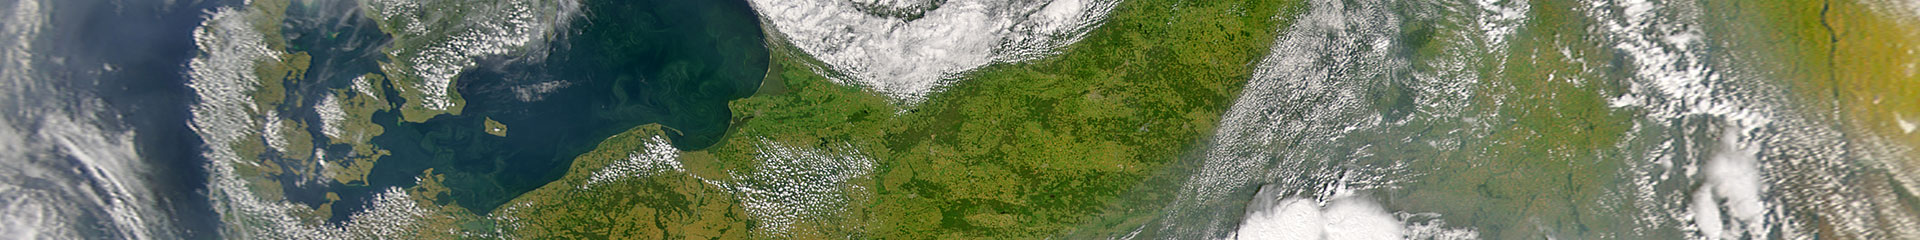 Baltic-earth---panorama---02